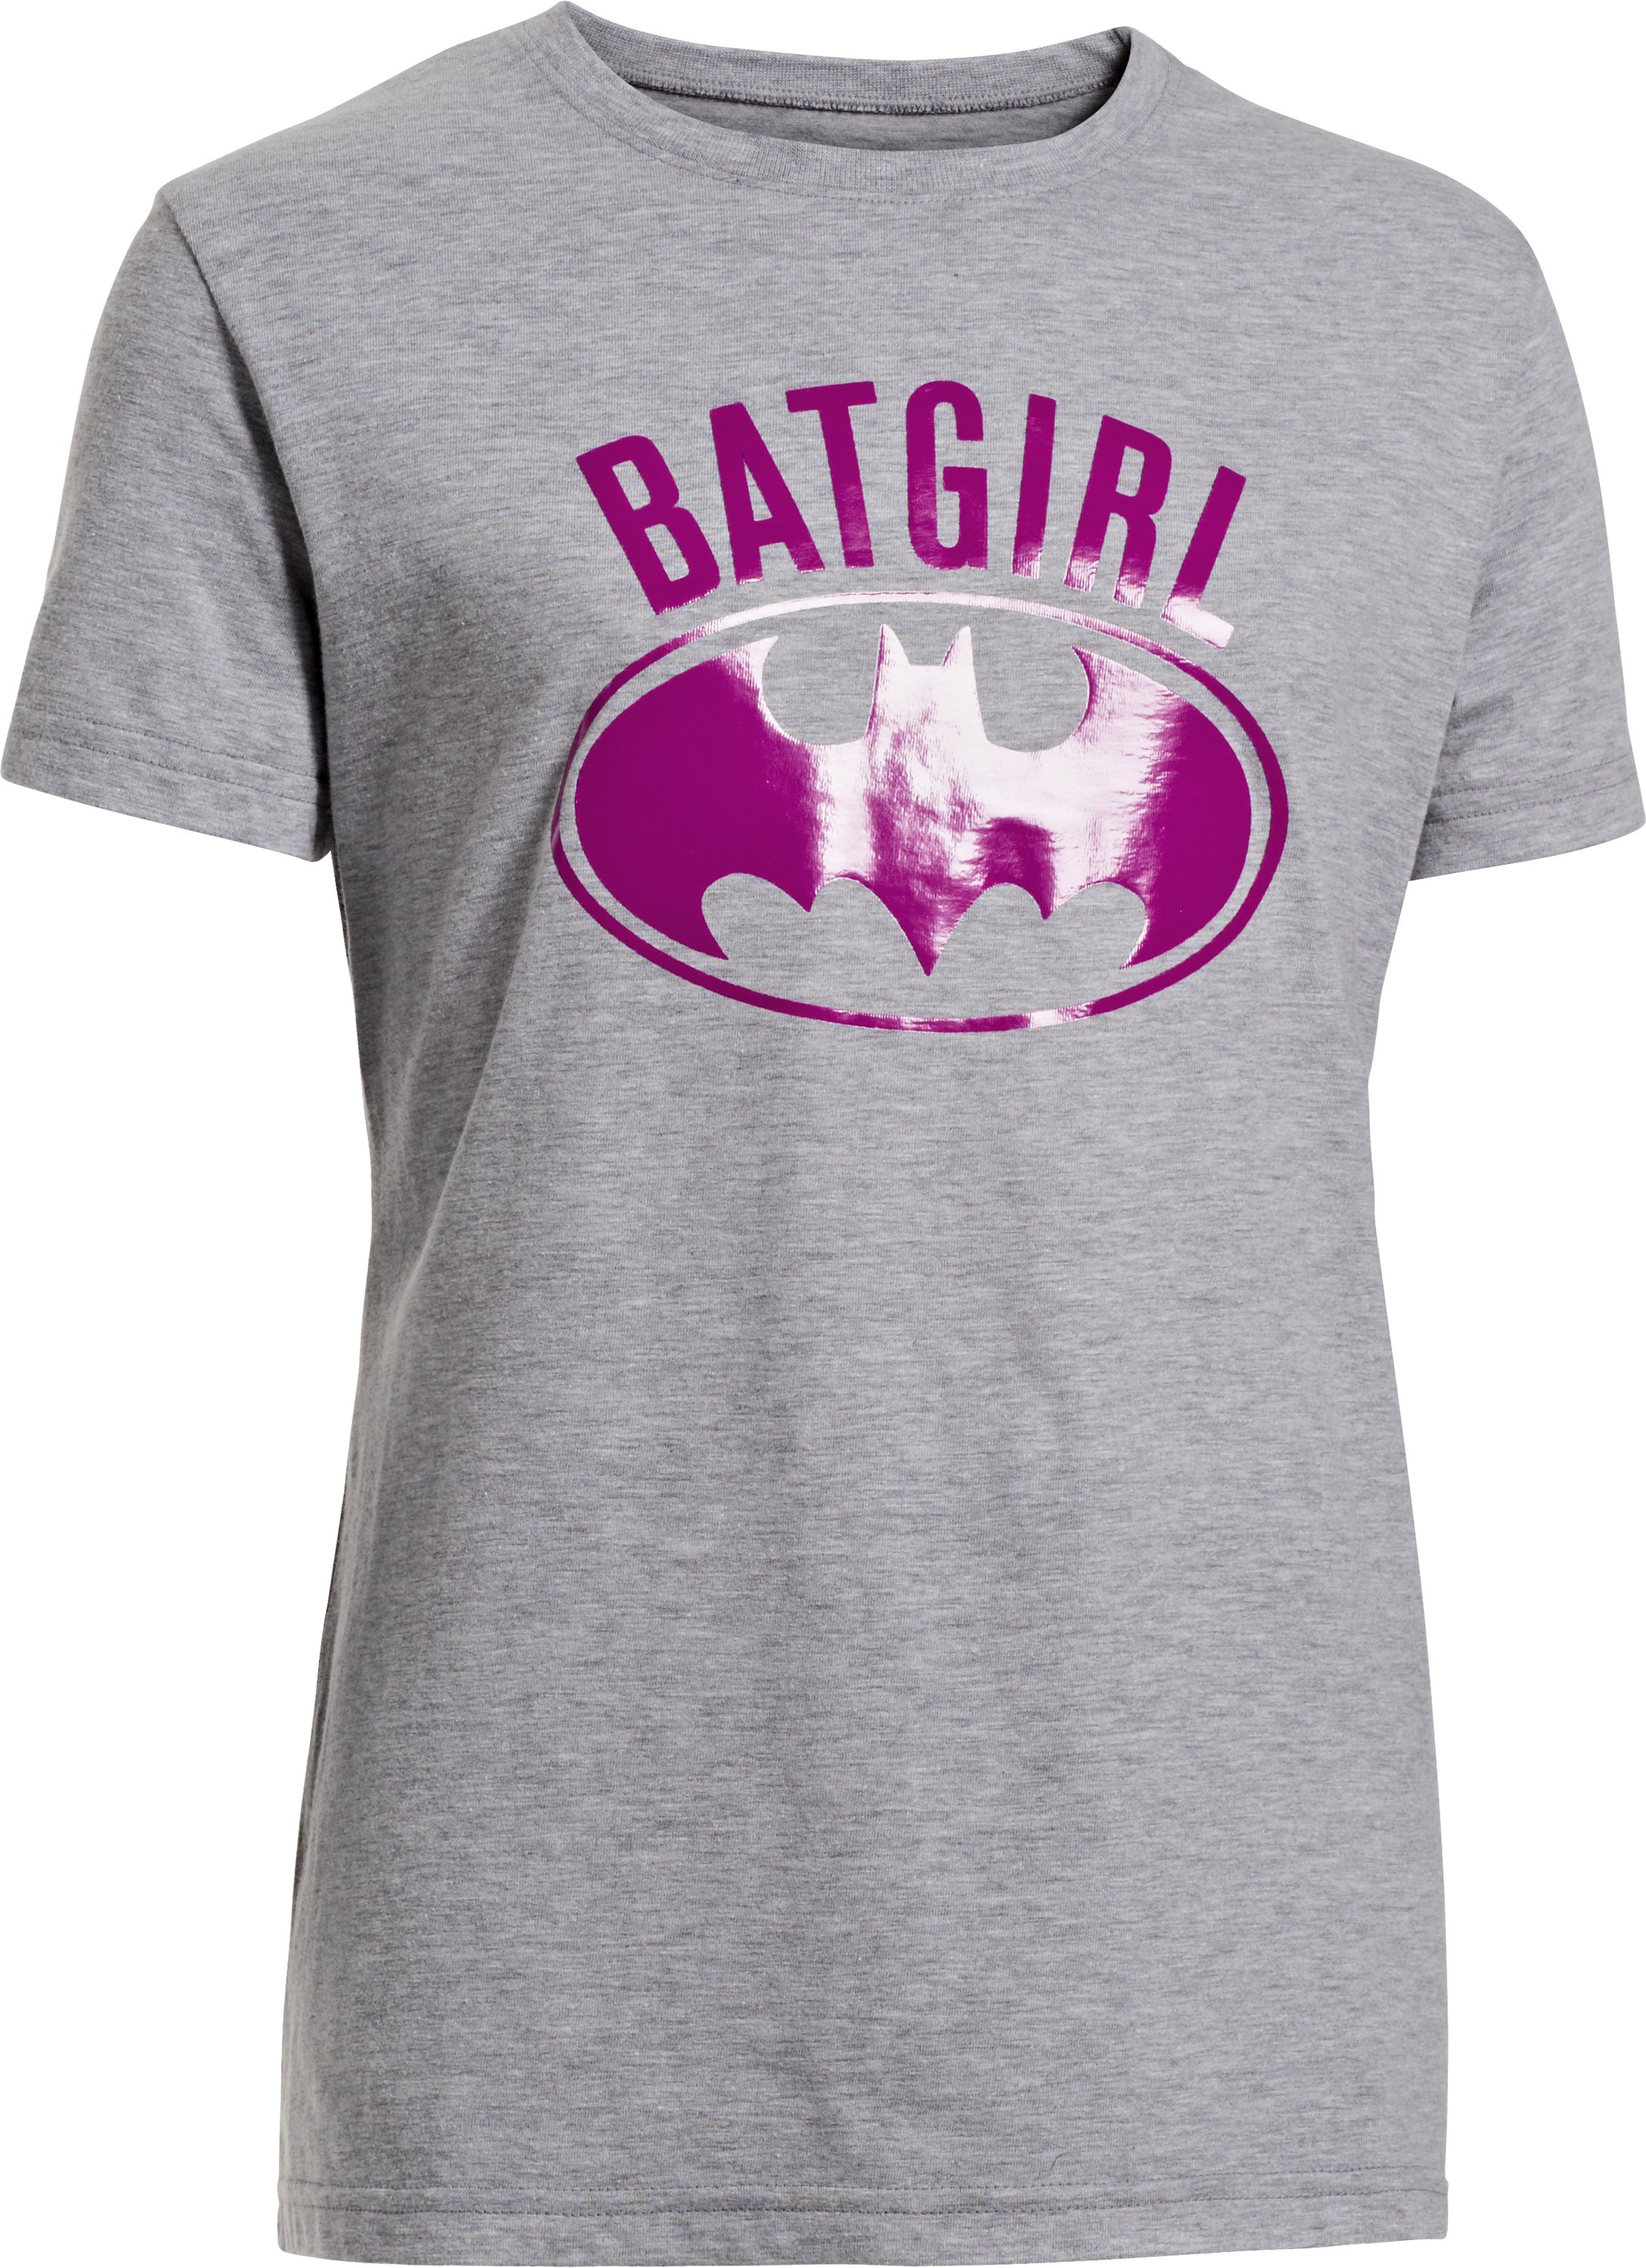 Girls' Under Armour® Alter Ego Batgirl Foil T-Shirt, True Gray Heather, zoomed image